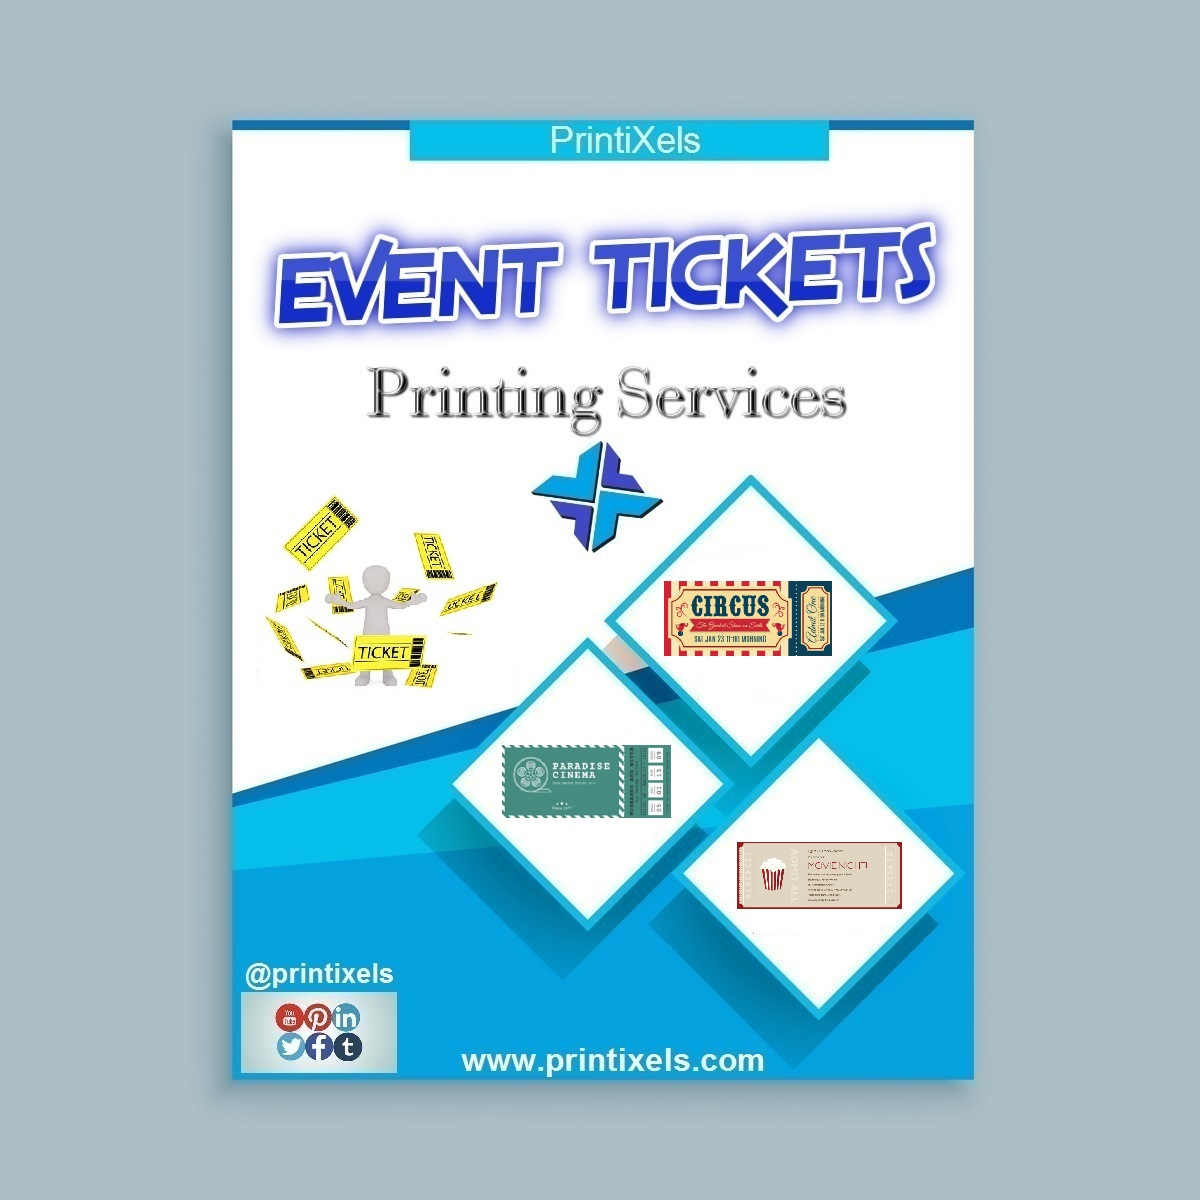 Event Tickets Printing Services